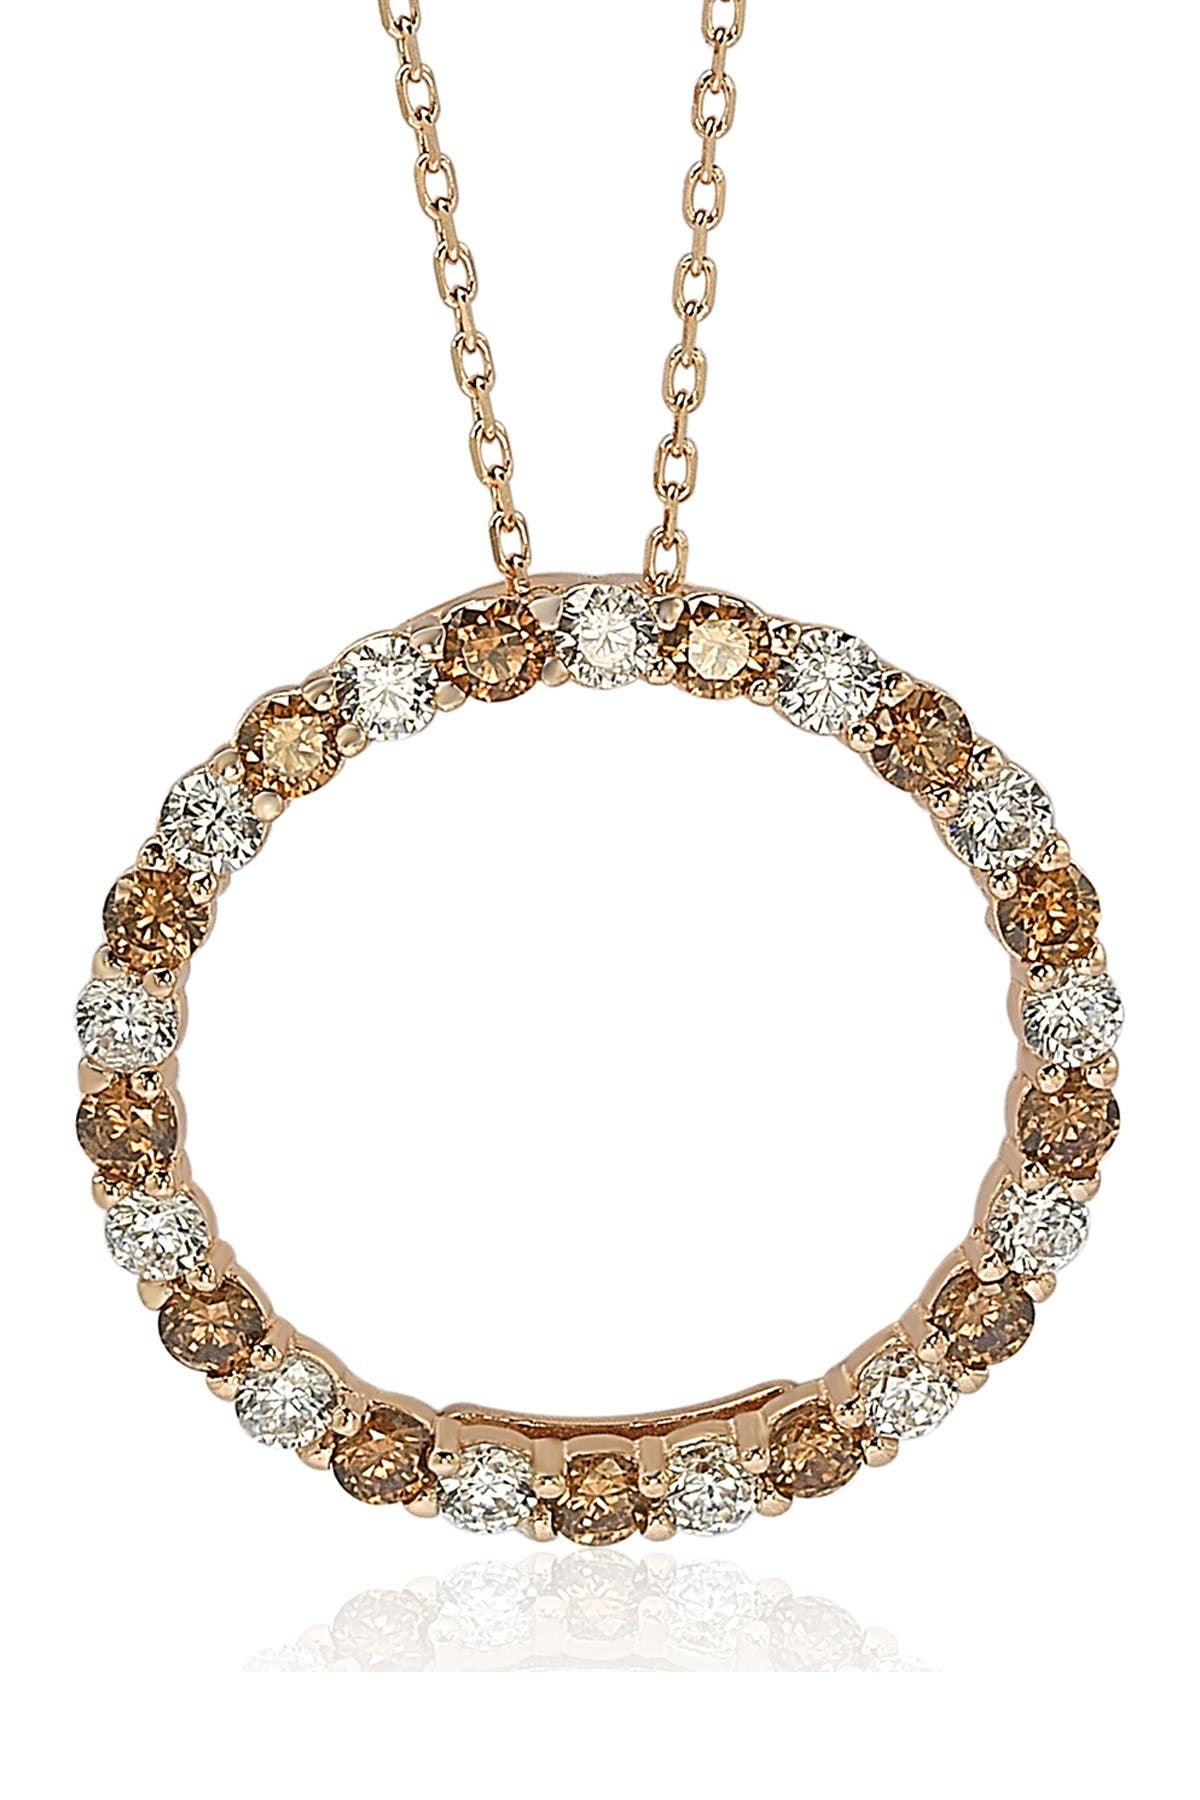 Image of Suzy Levian Rose-Tone Sterling Silver Prong Set Round Cut CZ Open Circle Pendant Necklace